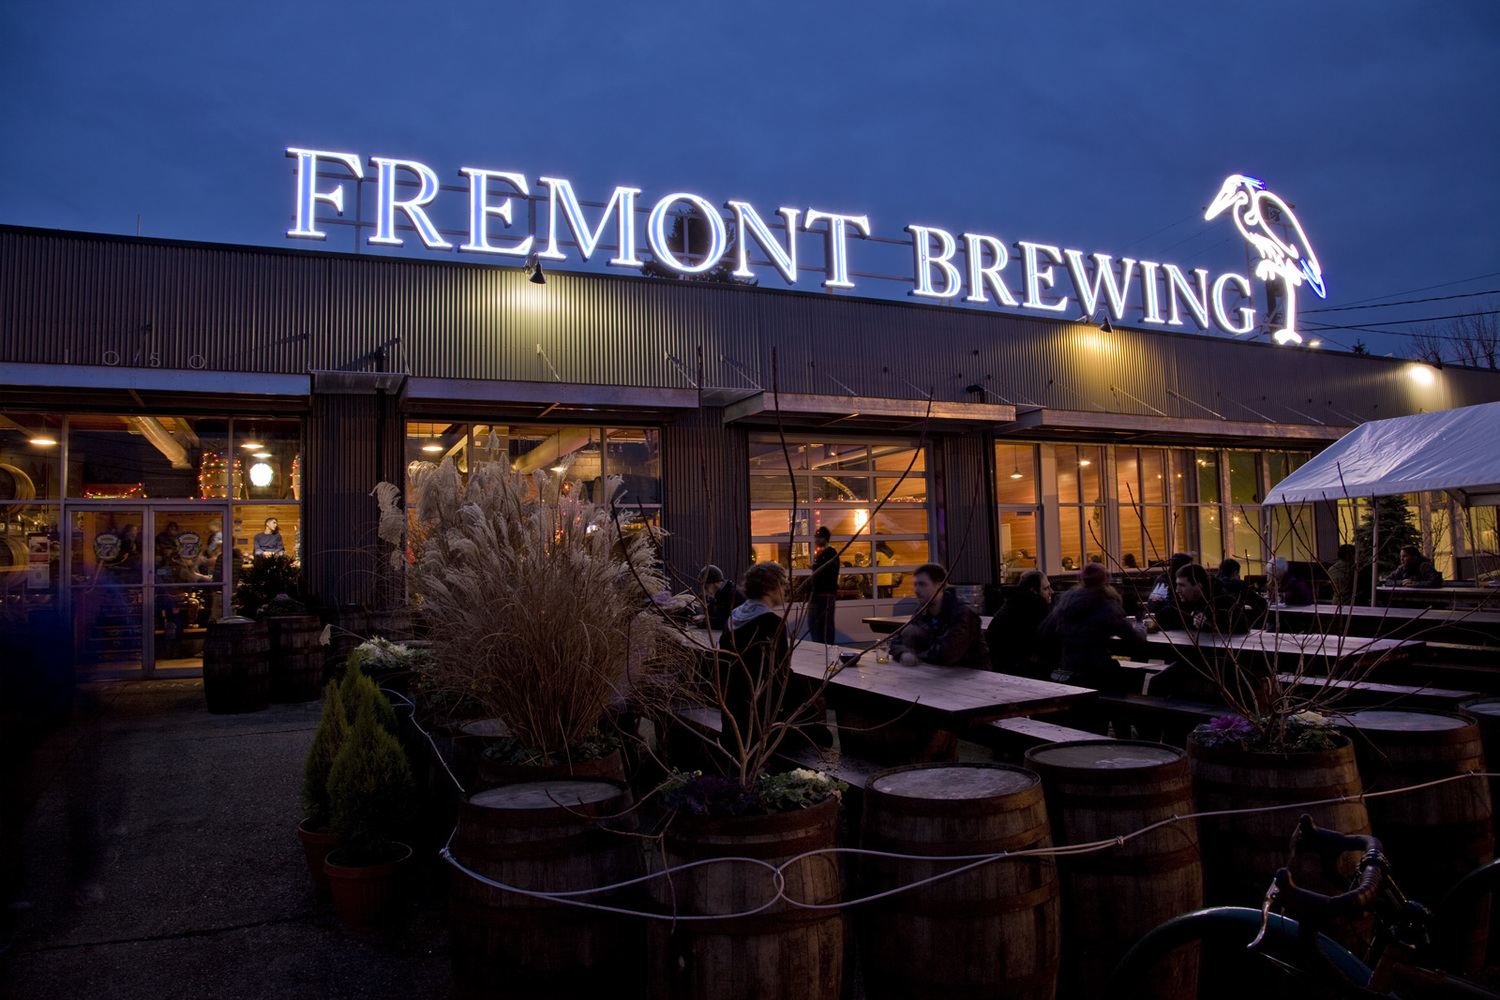 Fremont Brewing Company (Seattle Mariners)